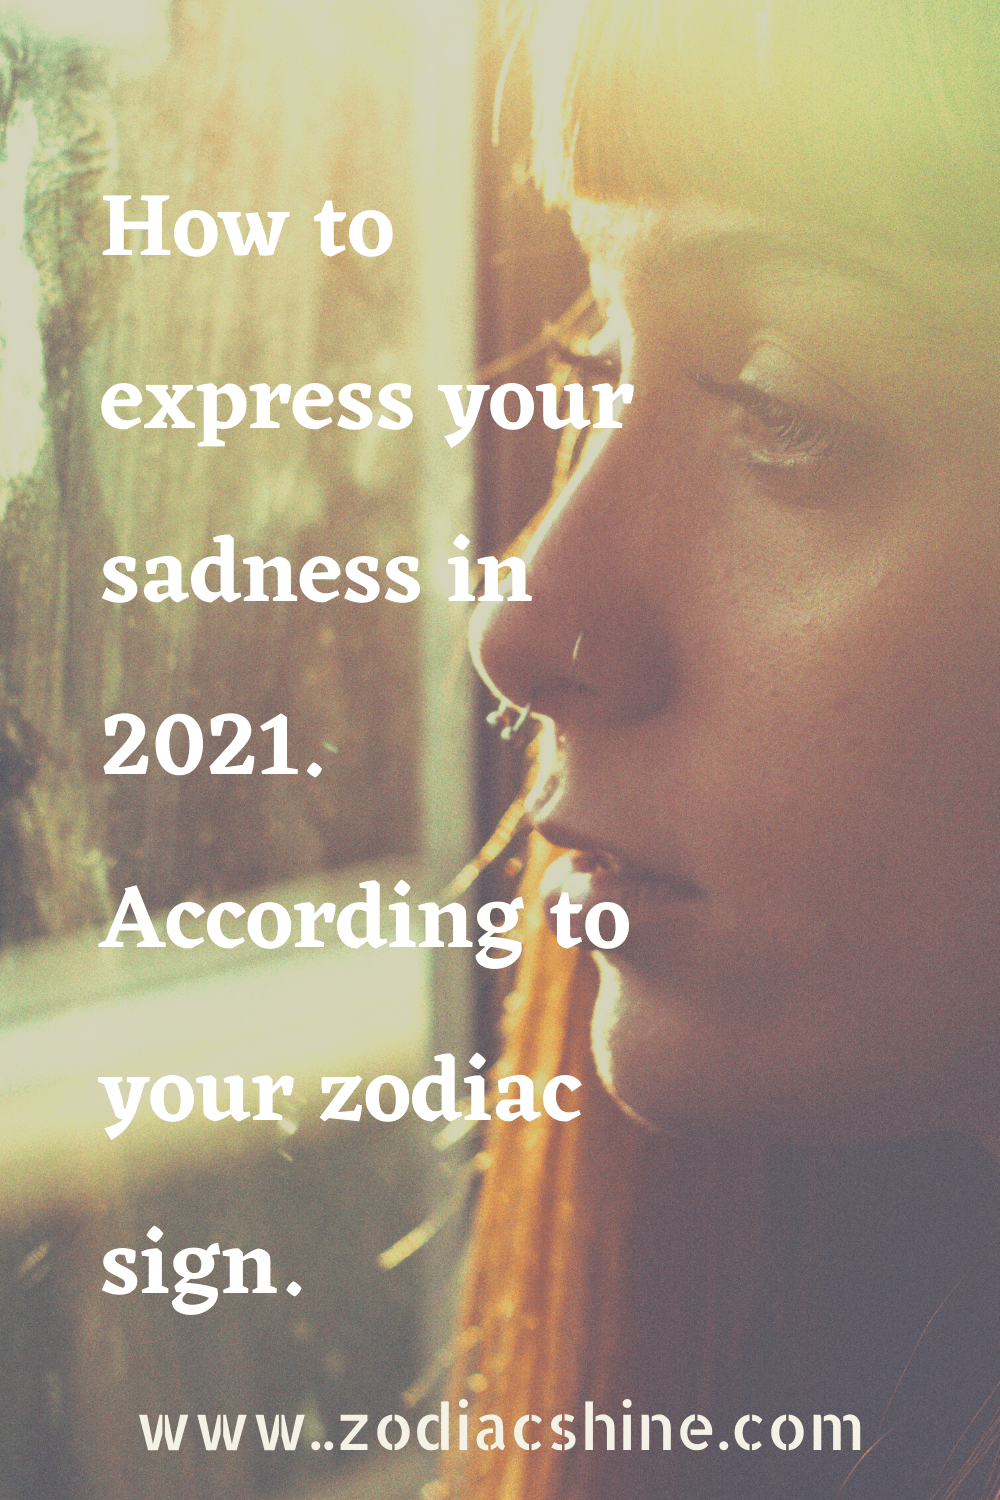 How to express your sadness in 2021. According to your zodiac sign.